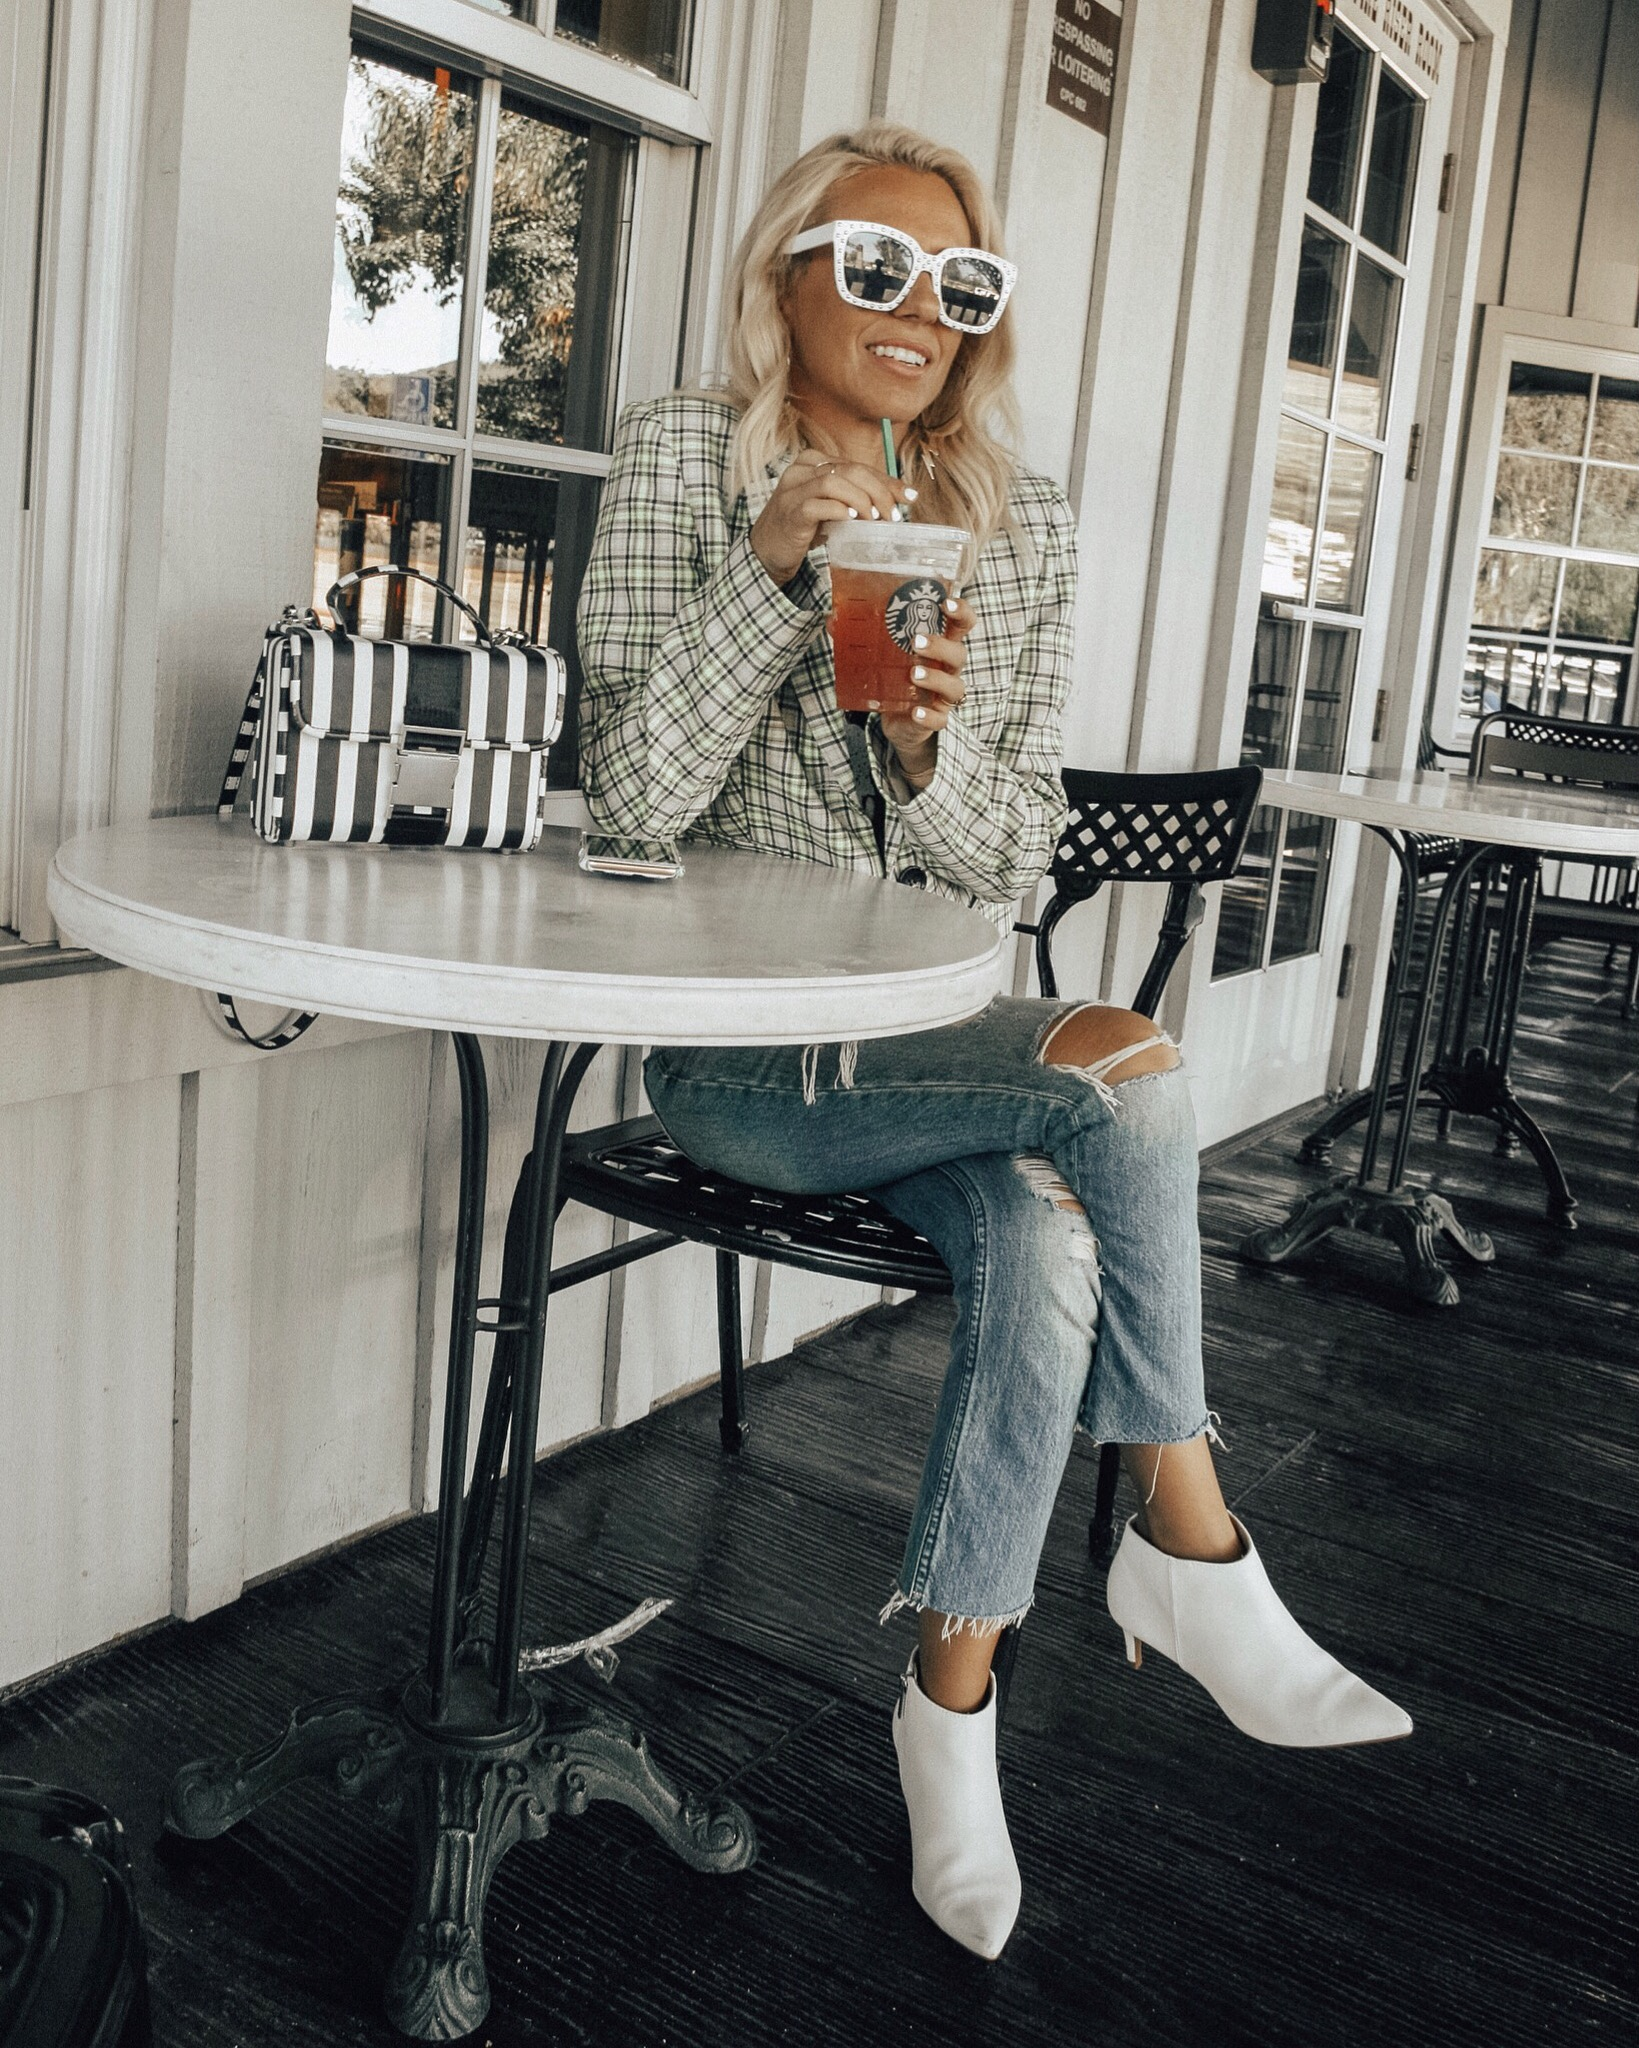 MAD FOR PLAID- Jaclyn De Leon Style + fall fashion + plaid blazer + street style + style inspo + band tee + white boots + striped handbag + 90's fashion + retro style + starbucks + mom style